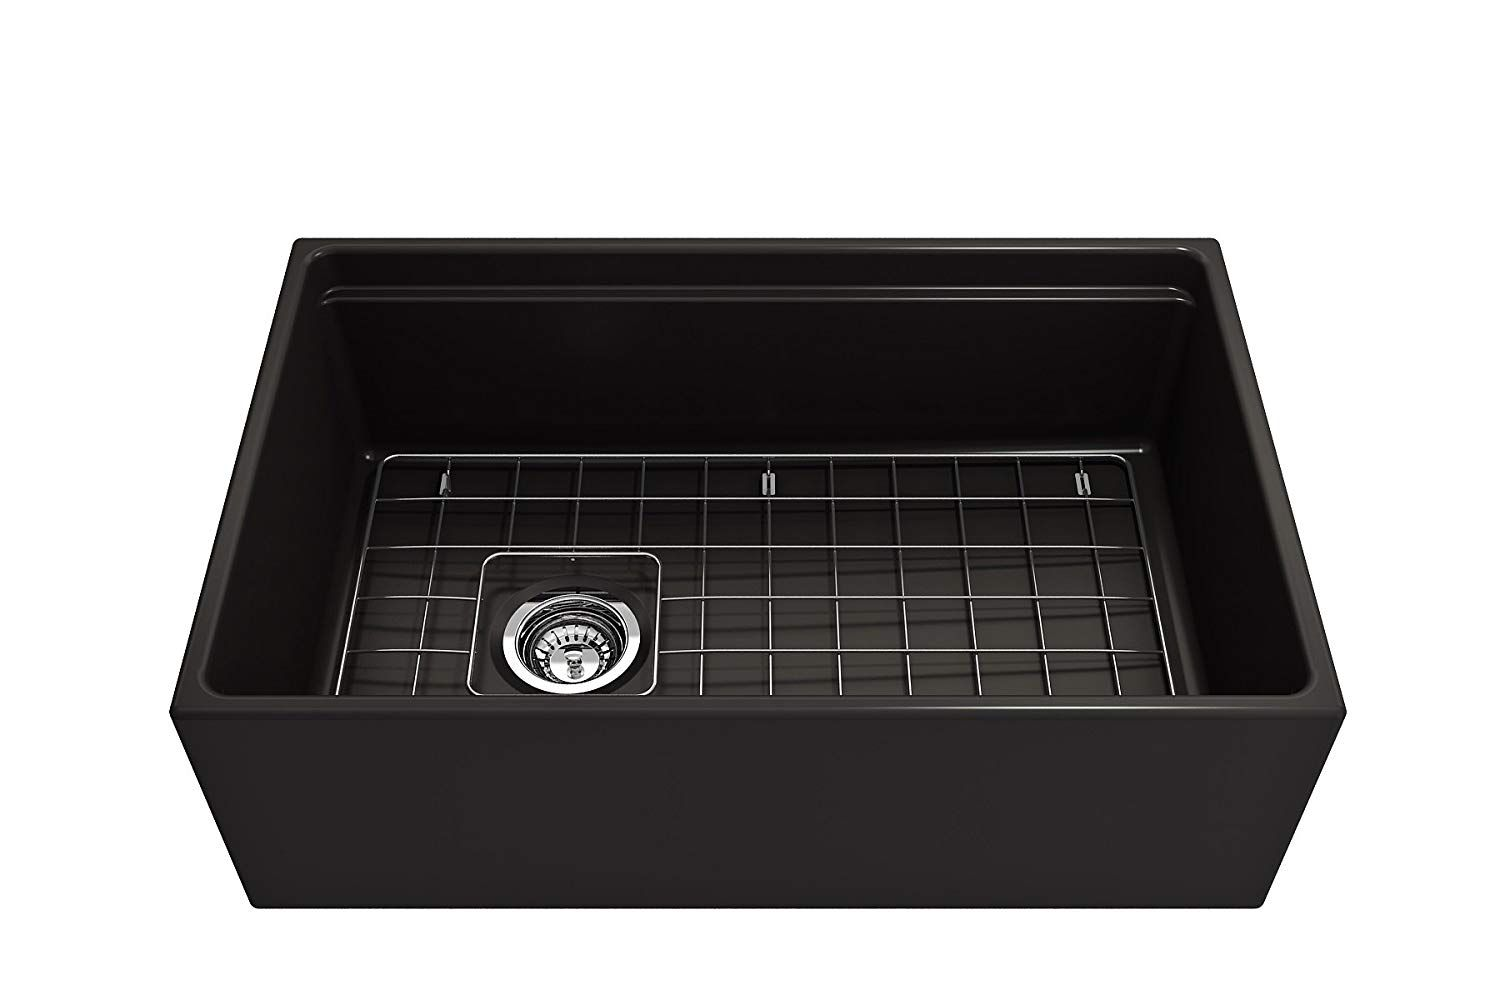 12 Best Black Kitchen Sinks Plus 1 To Avoid 2020 Buyers Guide